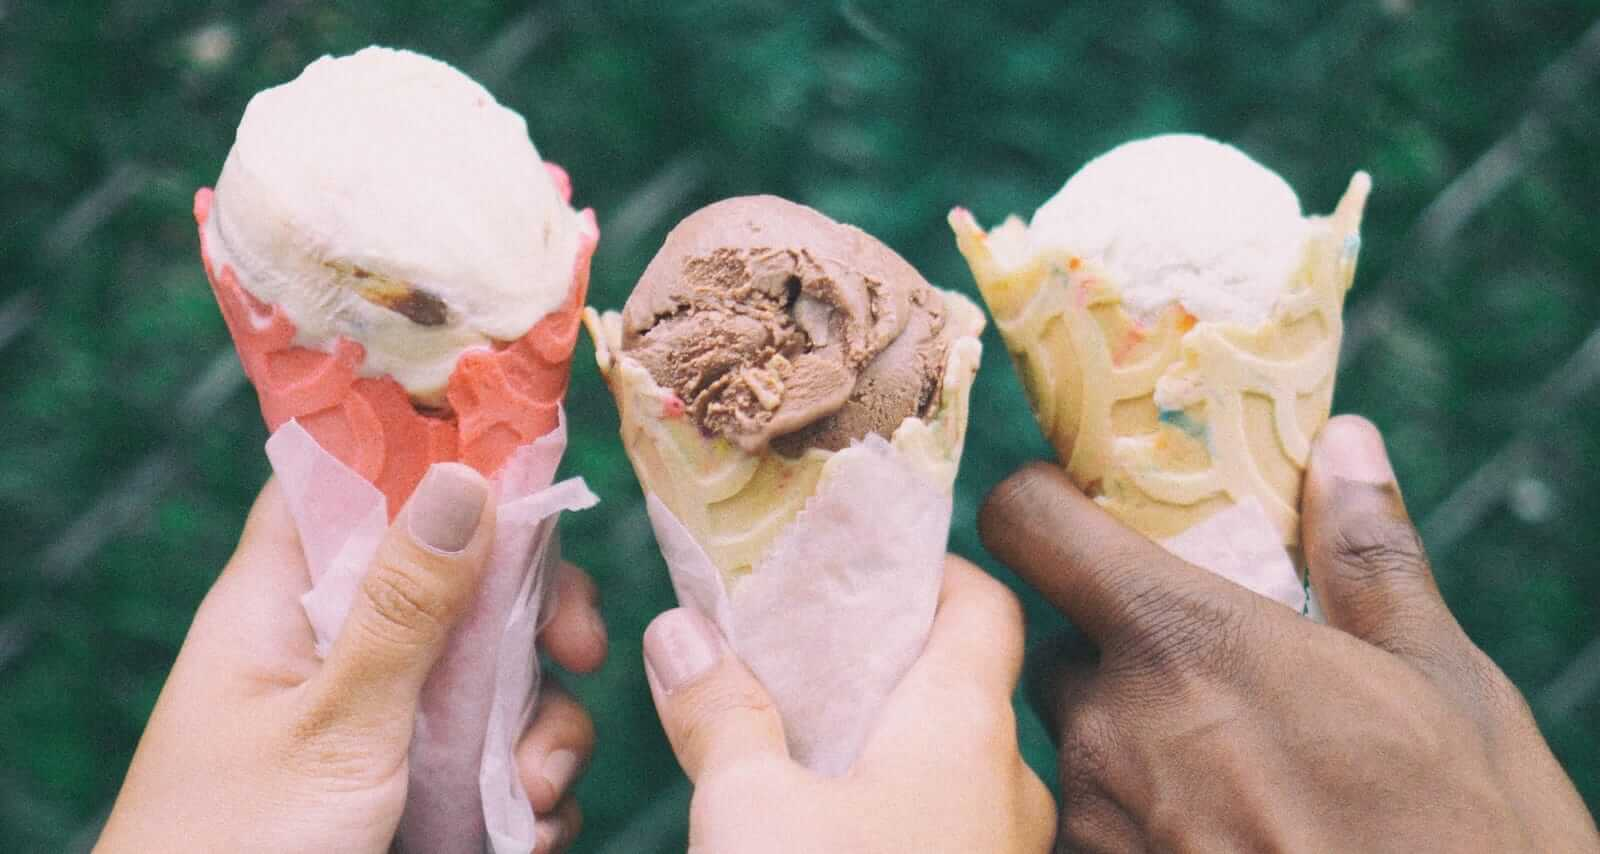 hands holding three cones of ice cream